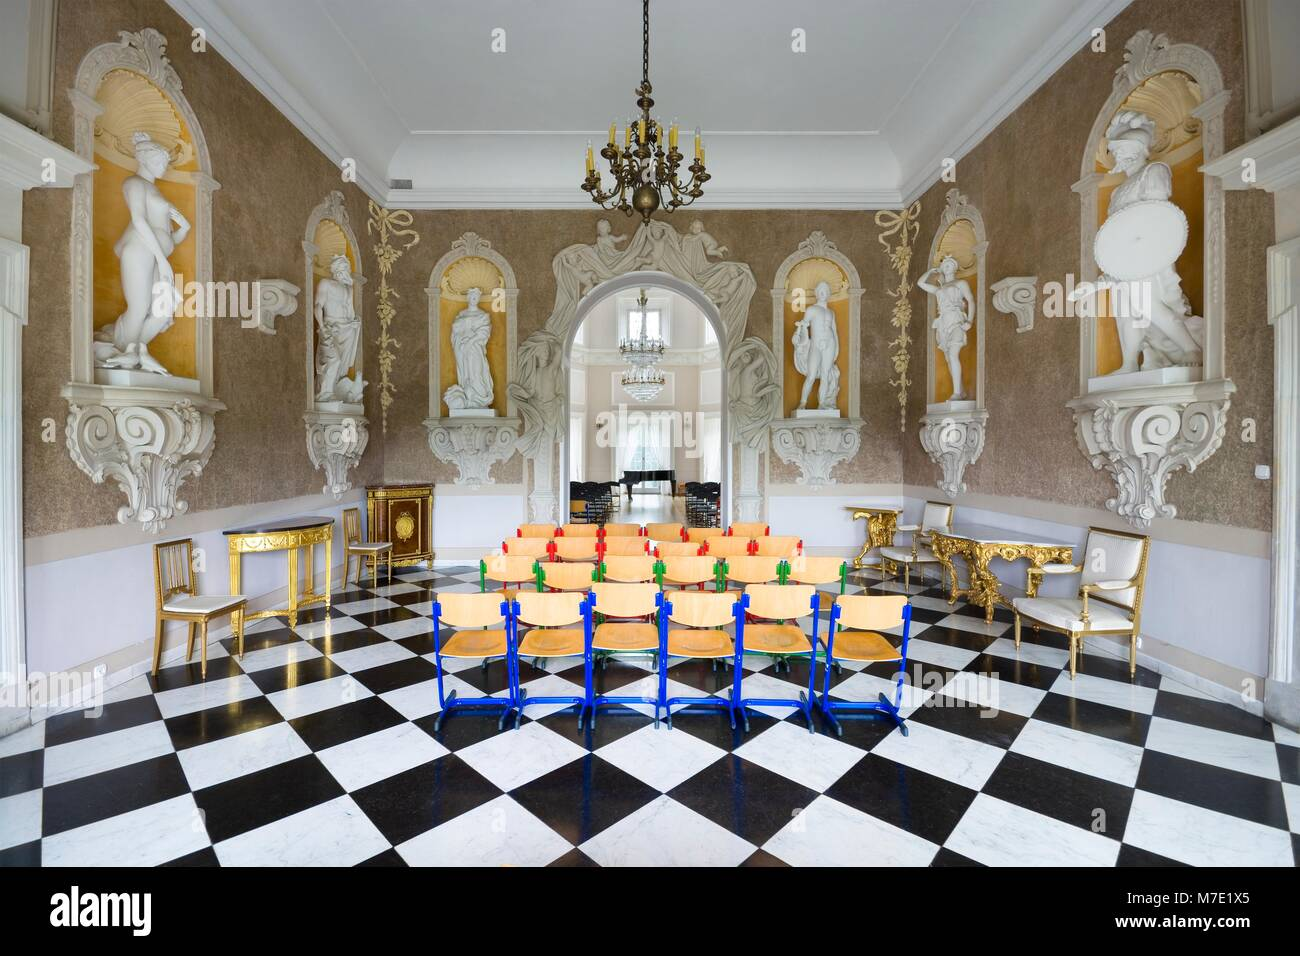 Otwock wielki poland august 17 2017 interior of baroque style otwock wielki poland august 17 2017 interior of baroque style bielinski palace in otwock wielki near warsaw vestibule and ballroom nowadays dailygadgetfo Image collections